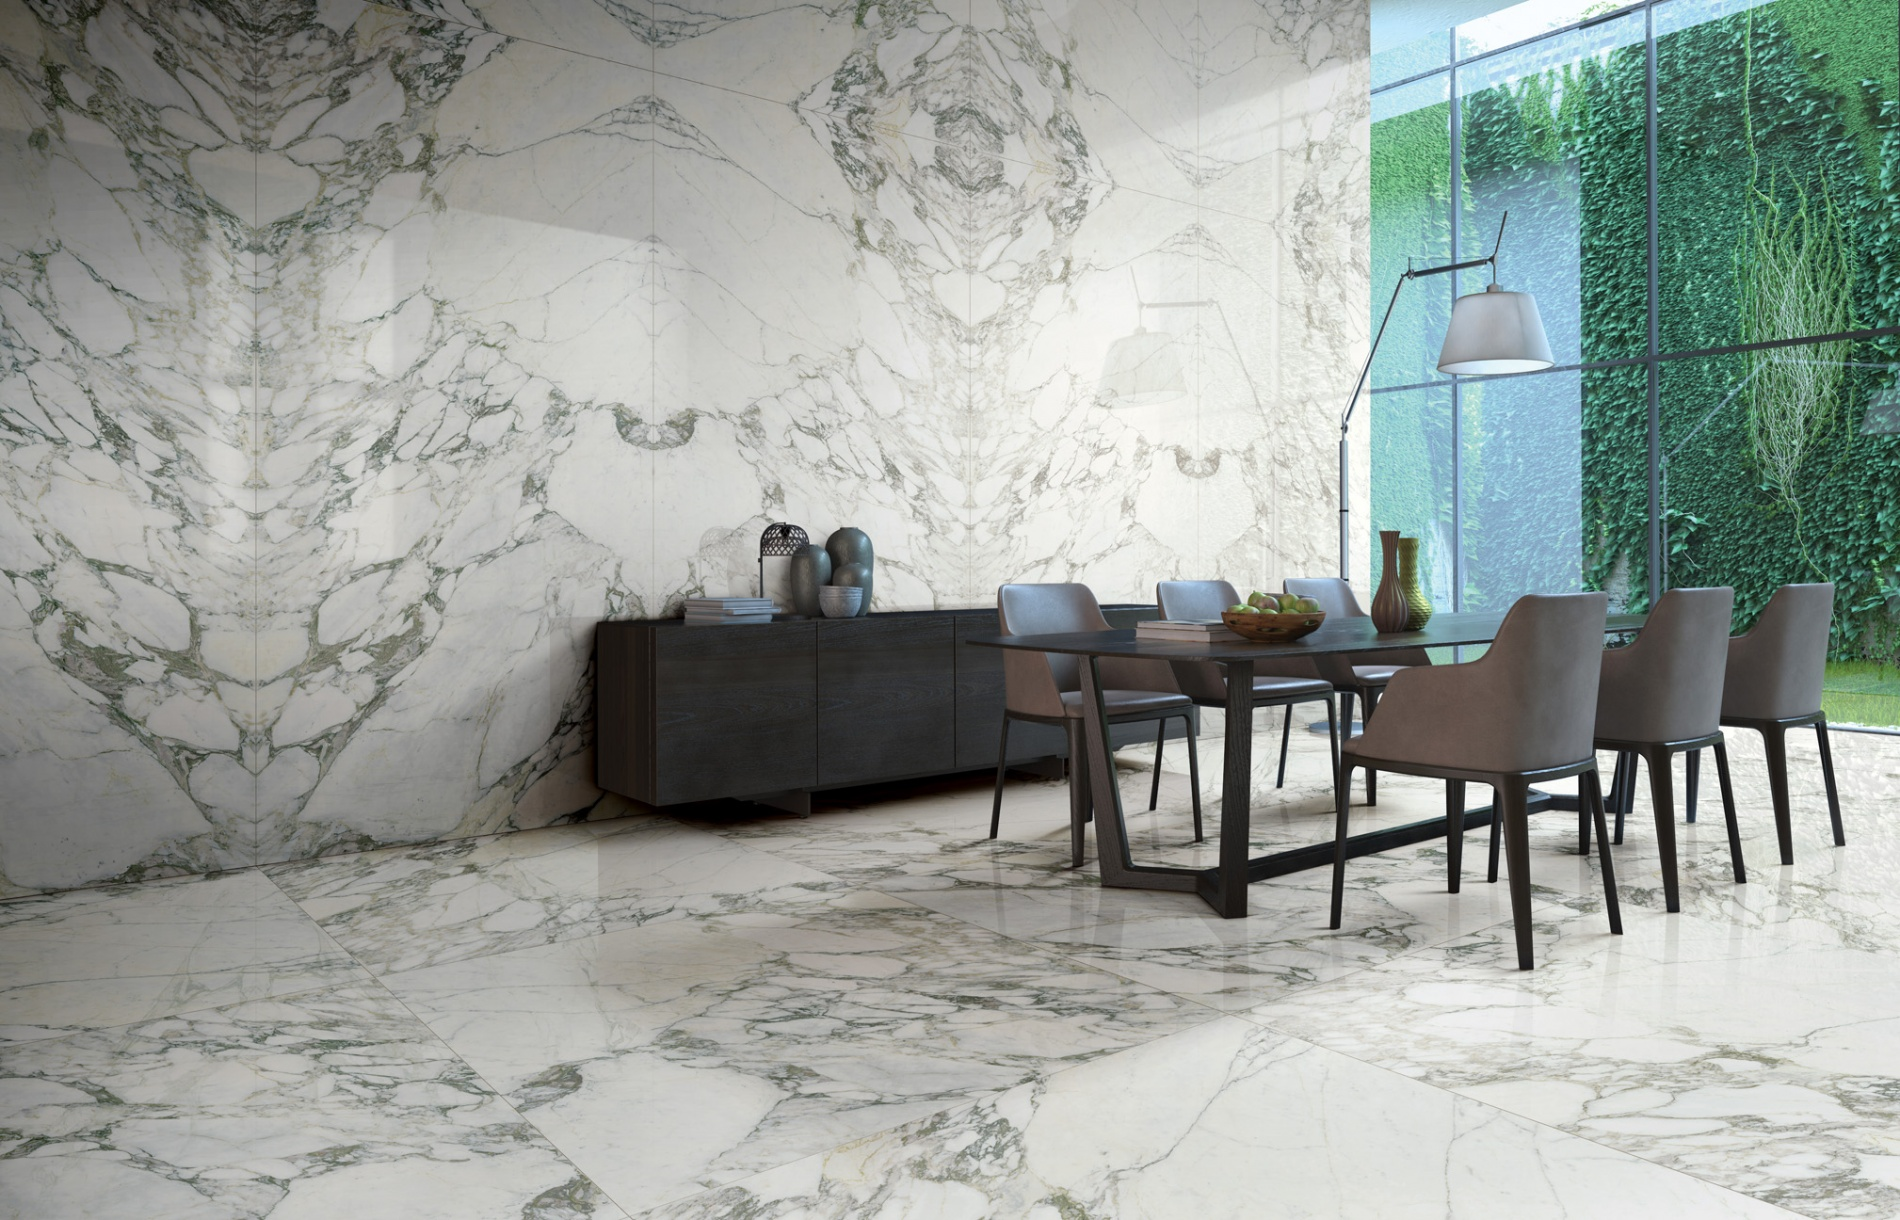 porcelain tile images: Stone Sense range high quality photo